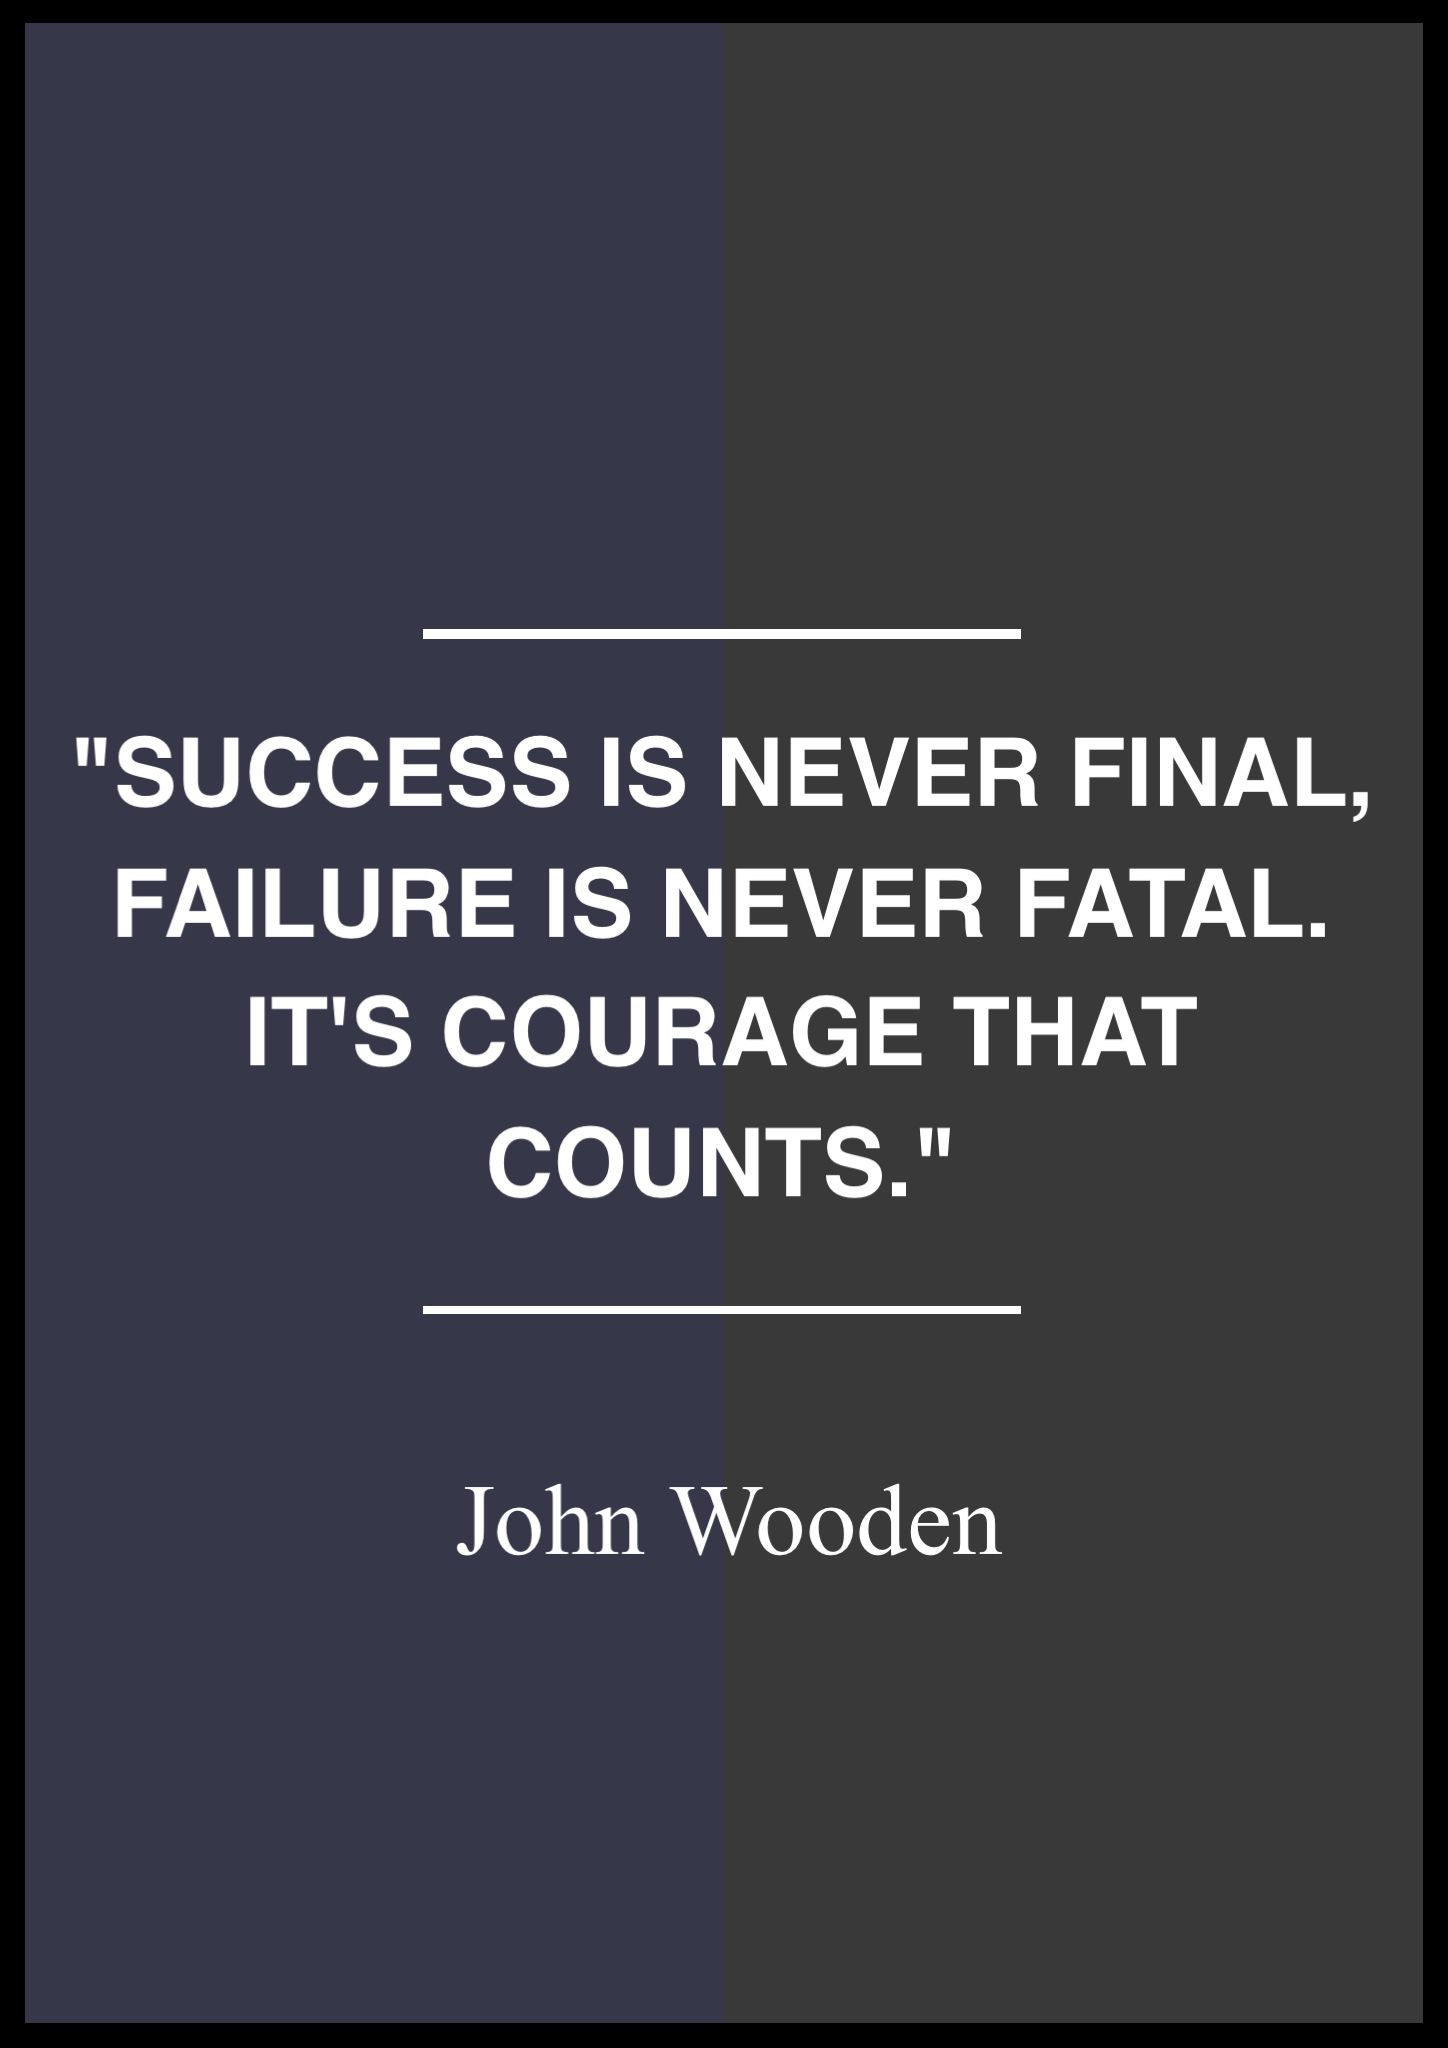 Finals Quotes Adorable Success Is Never Final Failure Is Never Fatalit's Courage That . Inspiration Design